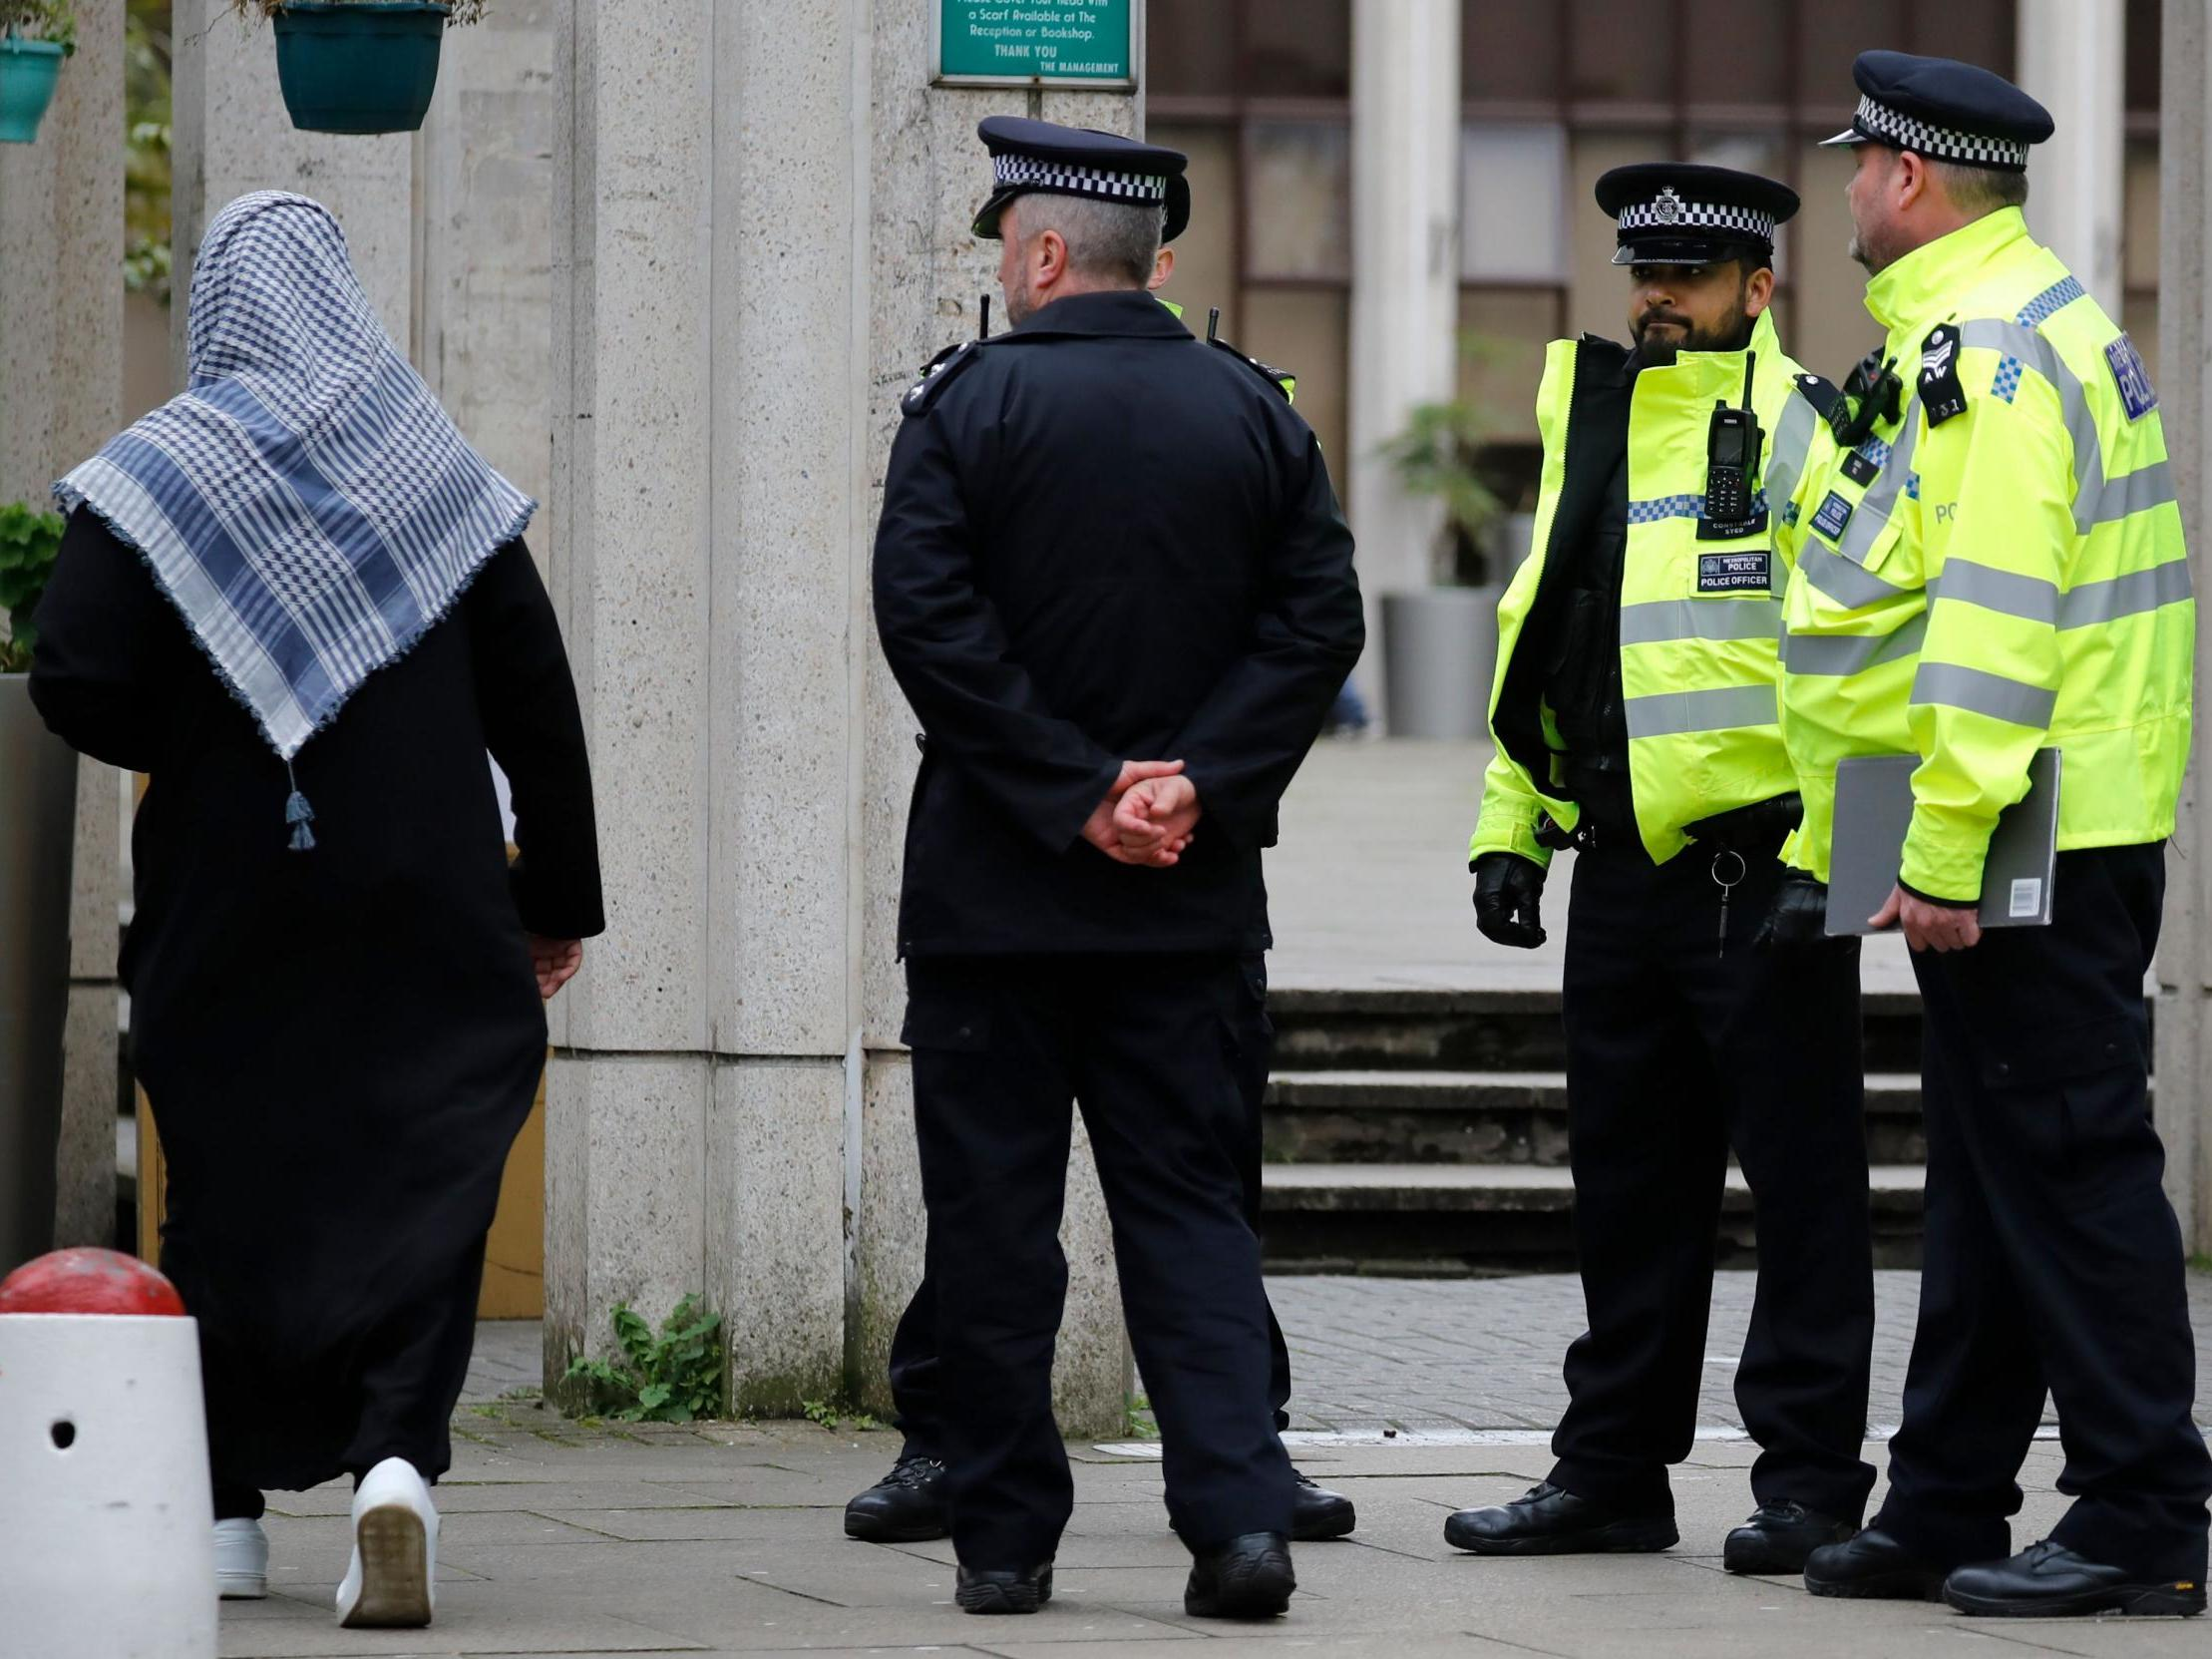 Man charged over London mosque stabbing